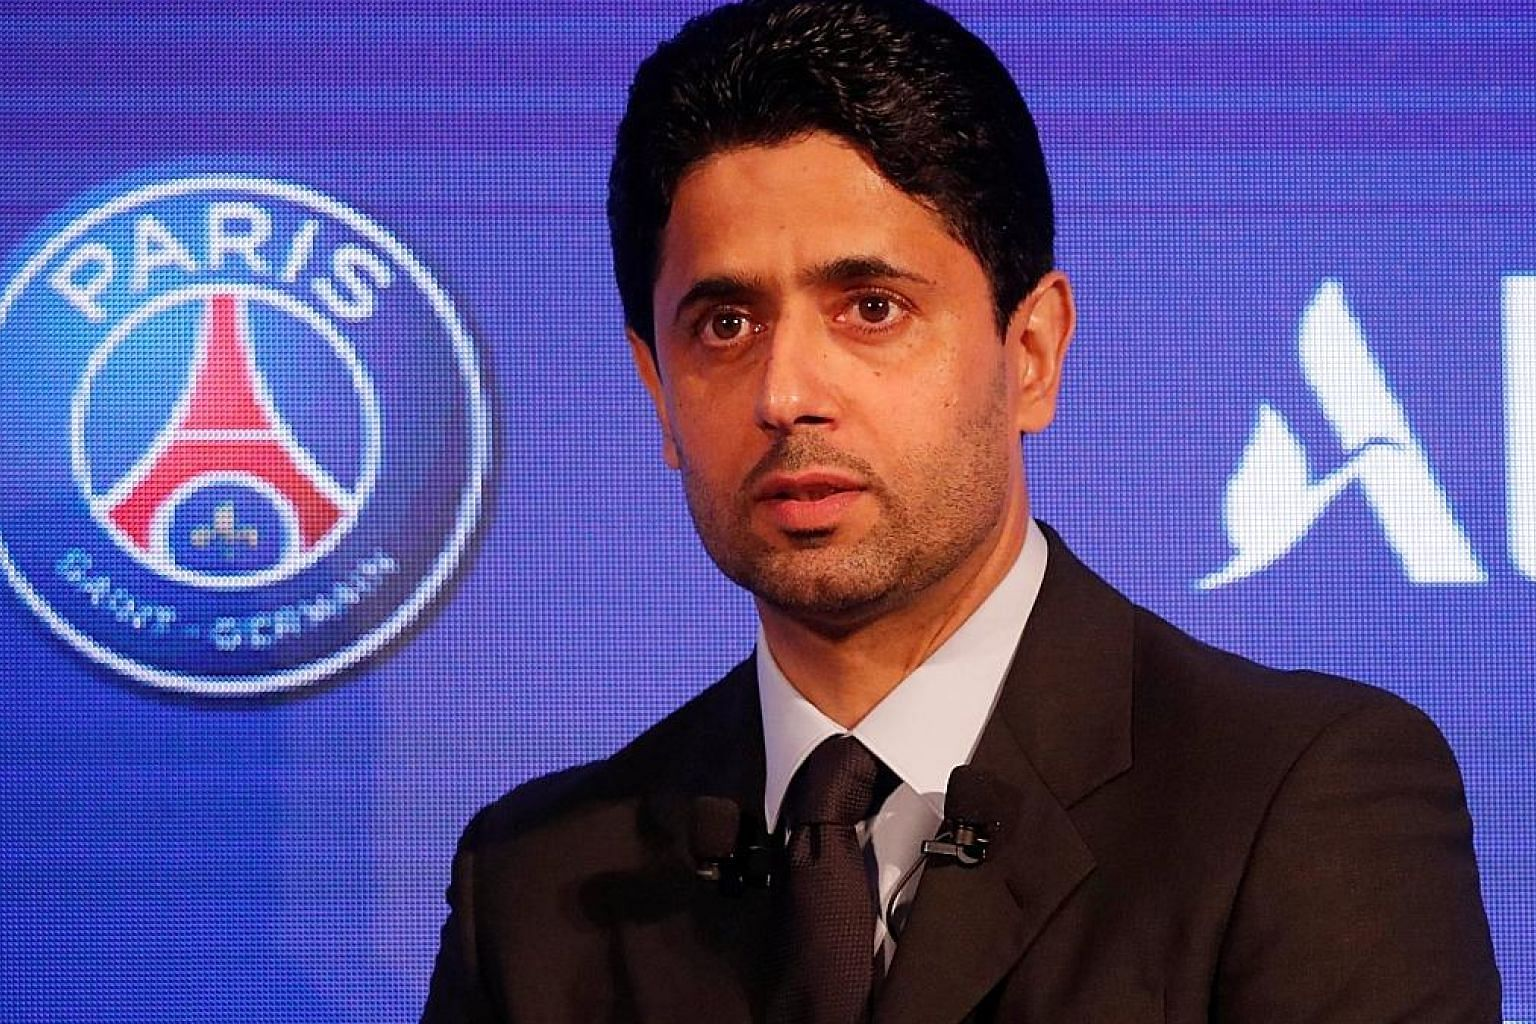 Paris Saint-Germain and beIN media chairman Nasser Al-Khelaifi is under scrutiny for multi-million dollar payments made to a firm owned by Papa Massata Diack.